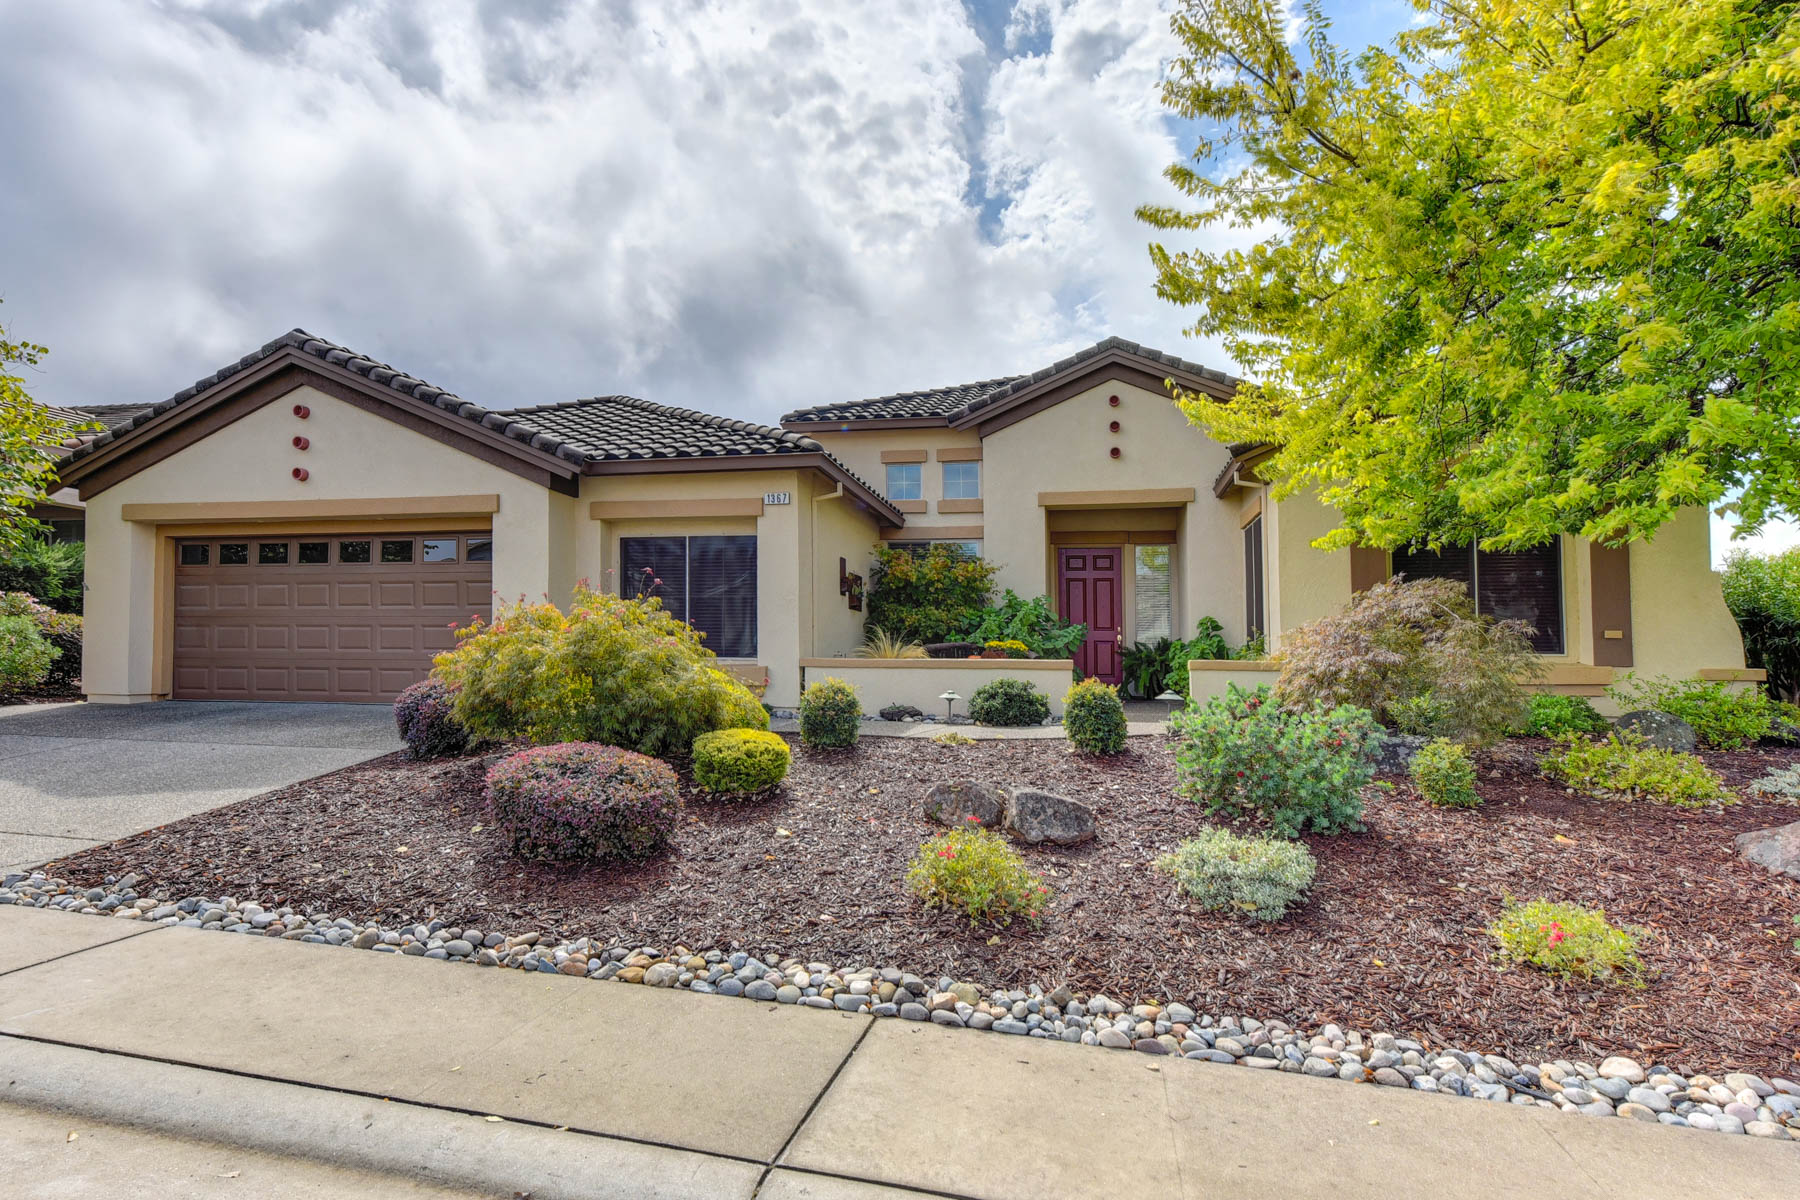 Other Residential Homes for Sale at 1367 Stone Hearth, Lincoln, CA, 95648 1367 Stone Hearth Lincoln, California 95648 United States